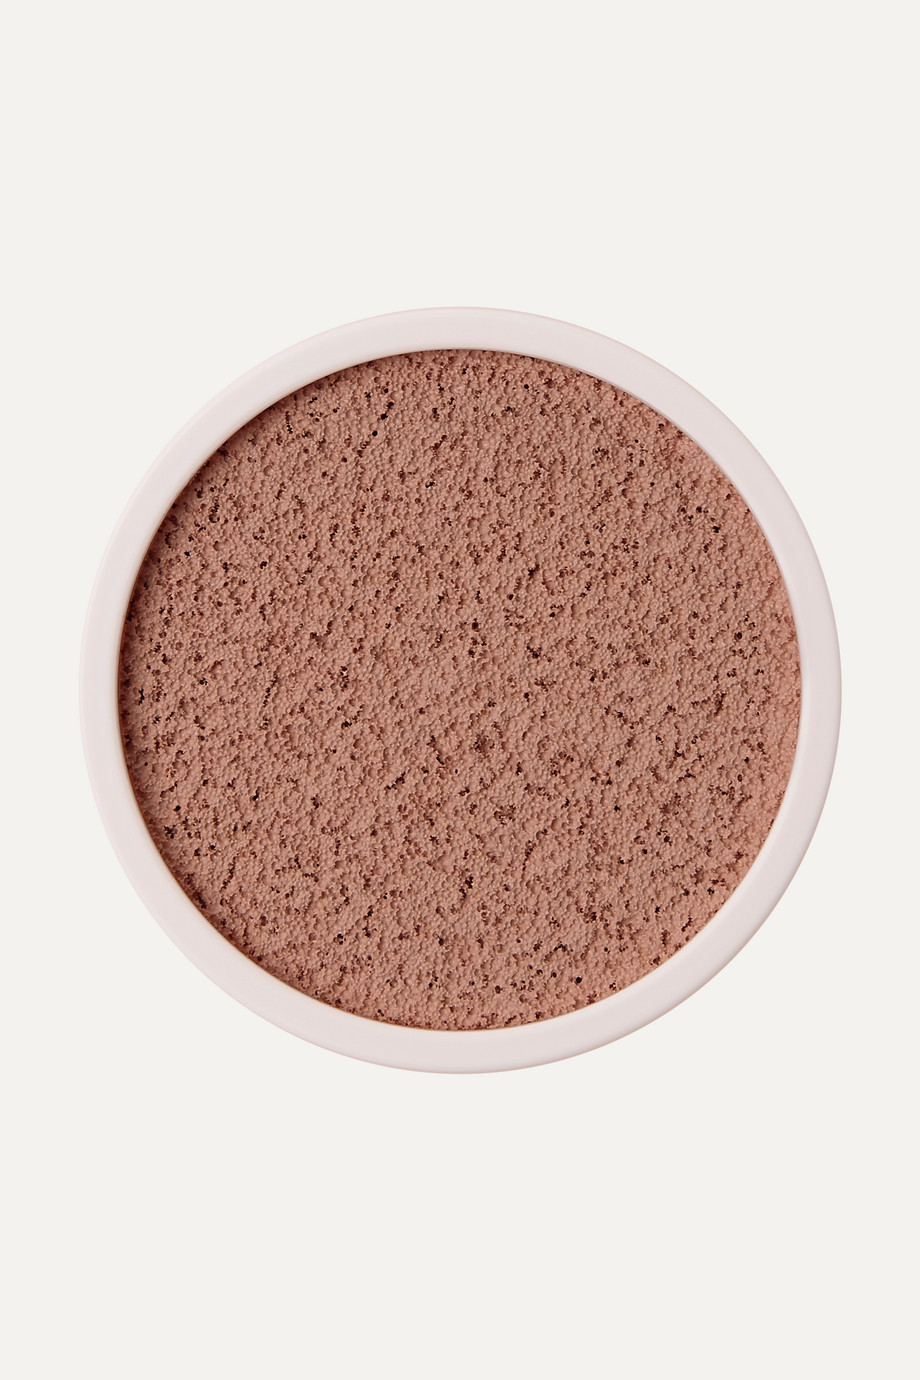 La Mer The Luminous Lifting Cushion Compact Foundation SPF20 - 31 Pink Bisque